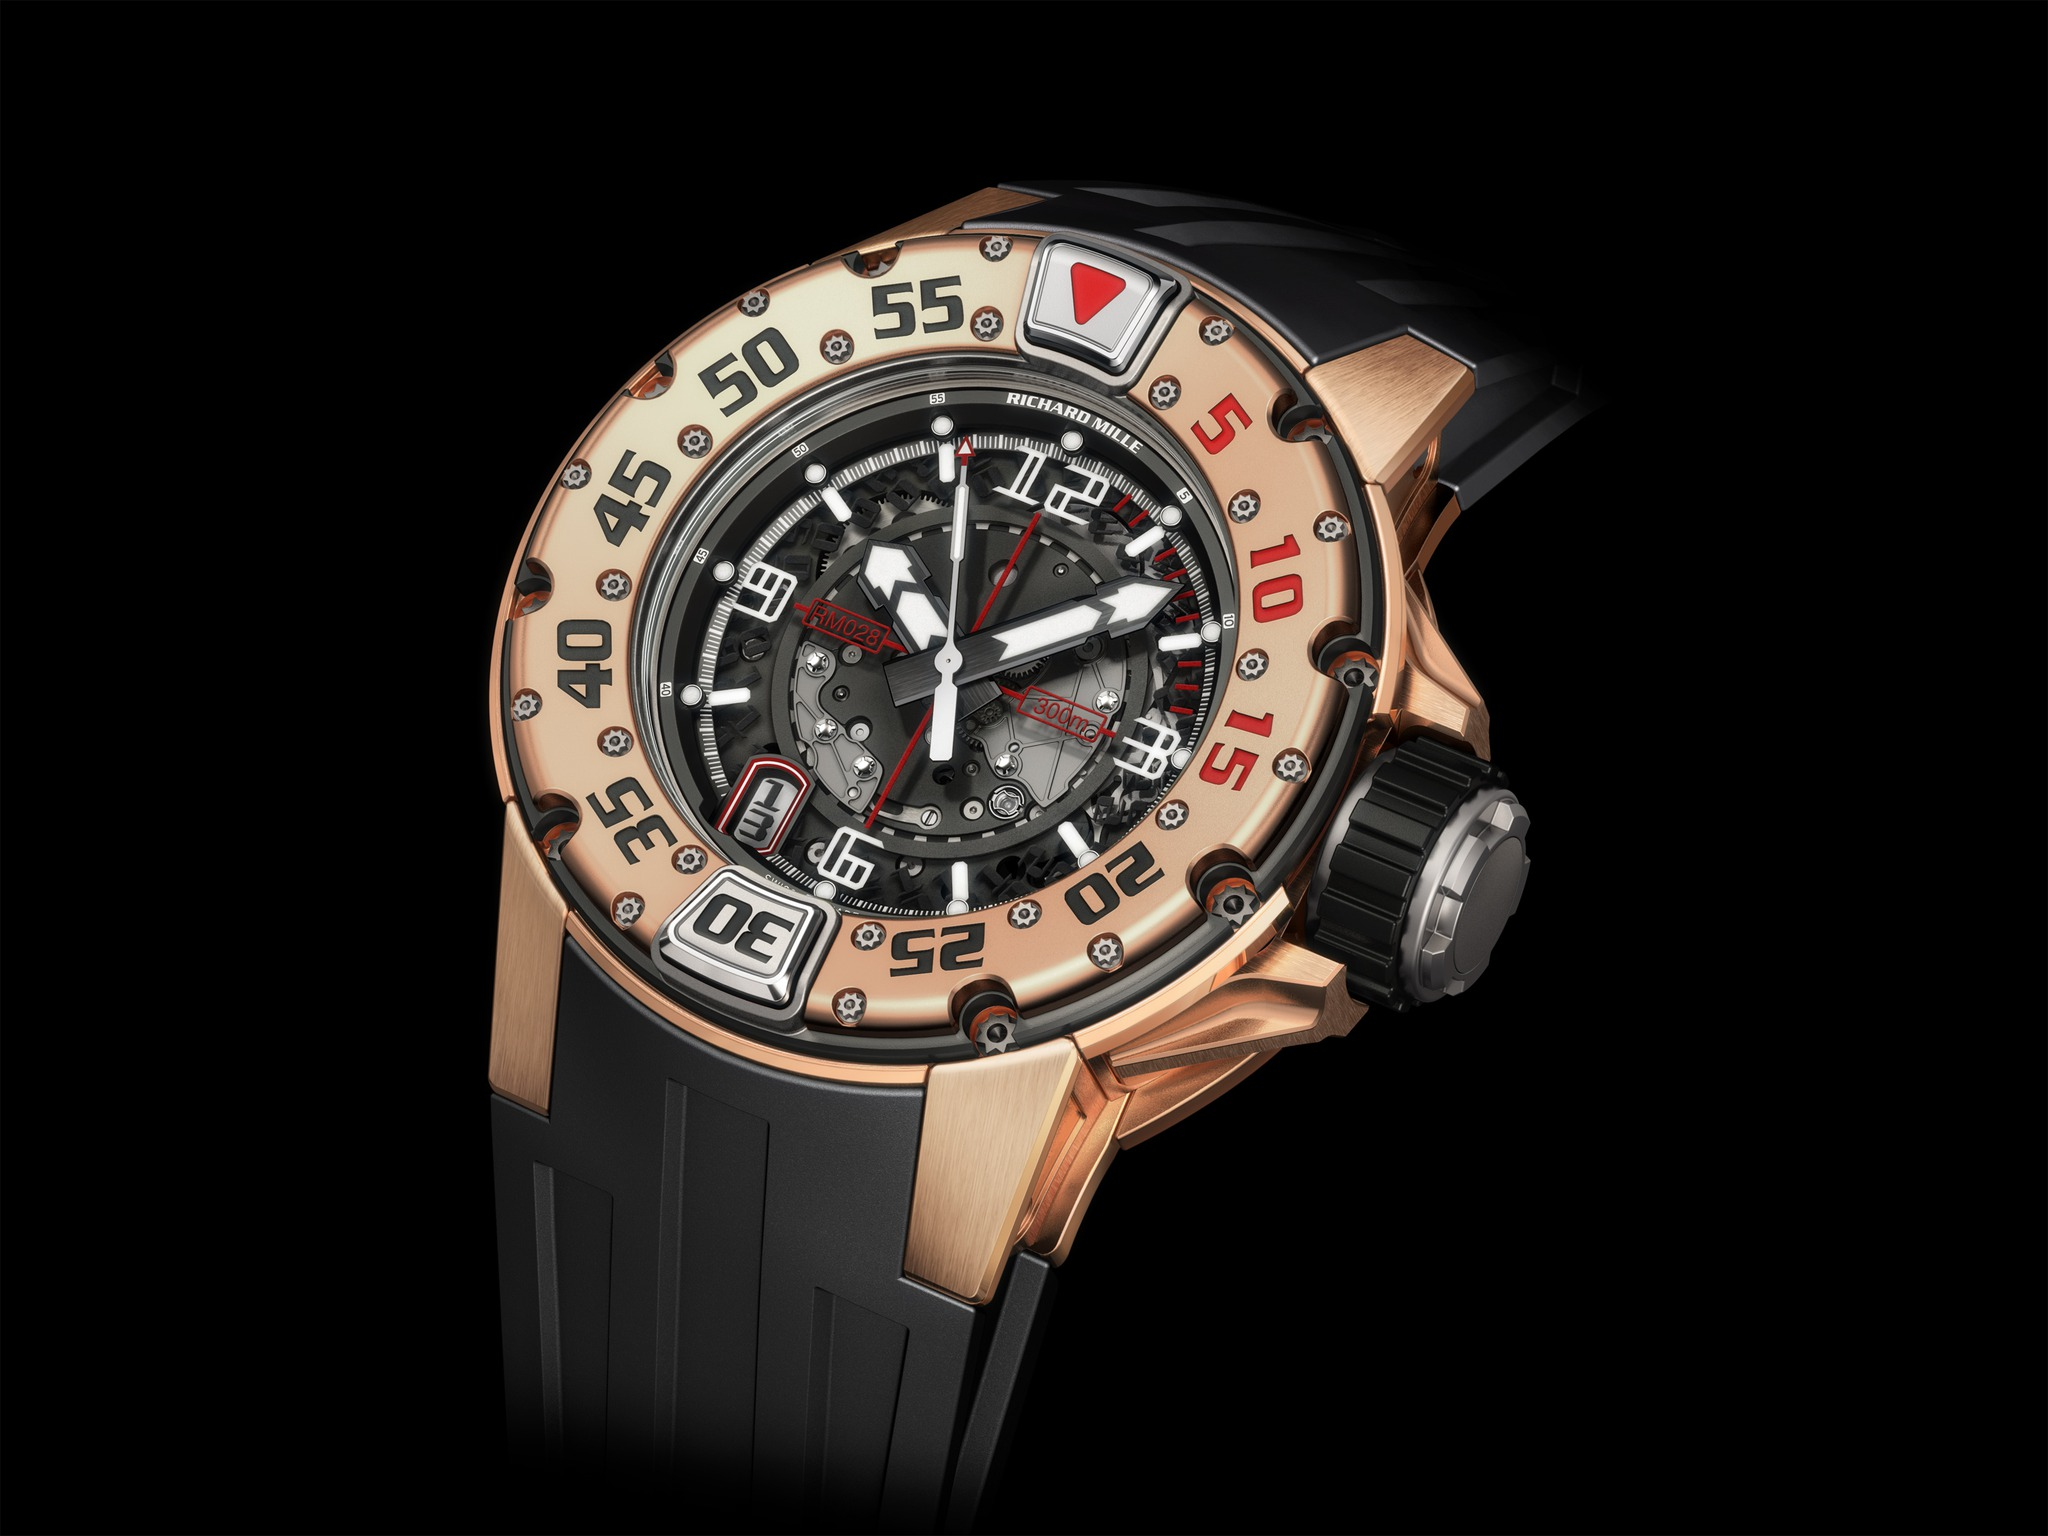 Replica Richard Mille RM 028 Diver Red Gold Watch